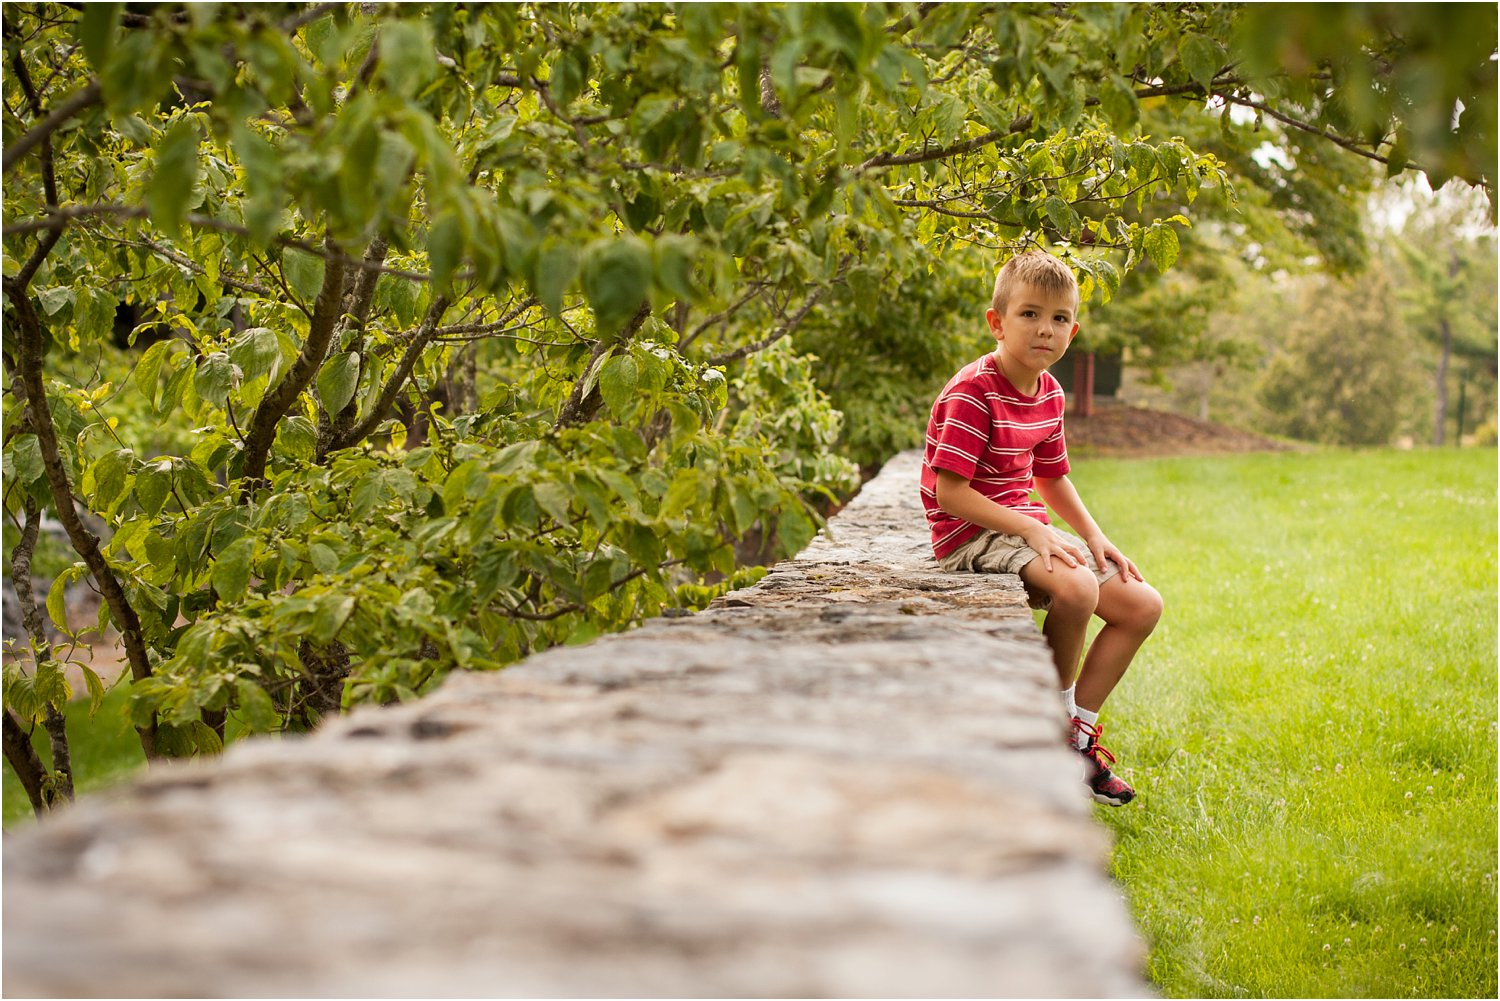 Blandy_Arboretum_Sibling_Mini_Sessions_Dodrill_0008.jpg